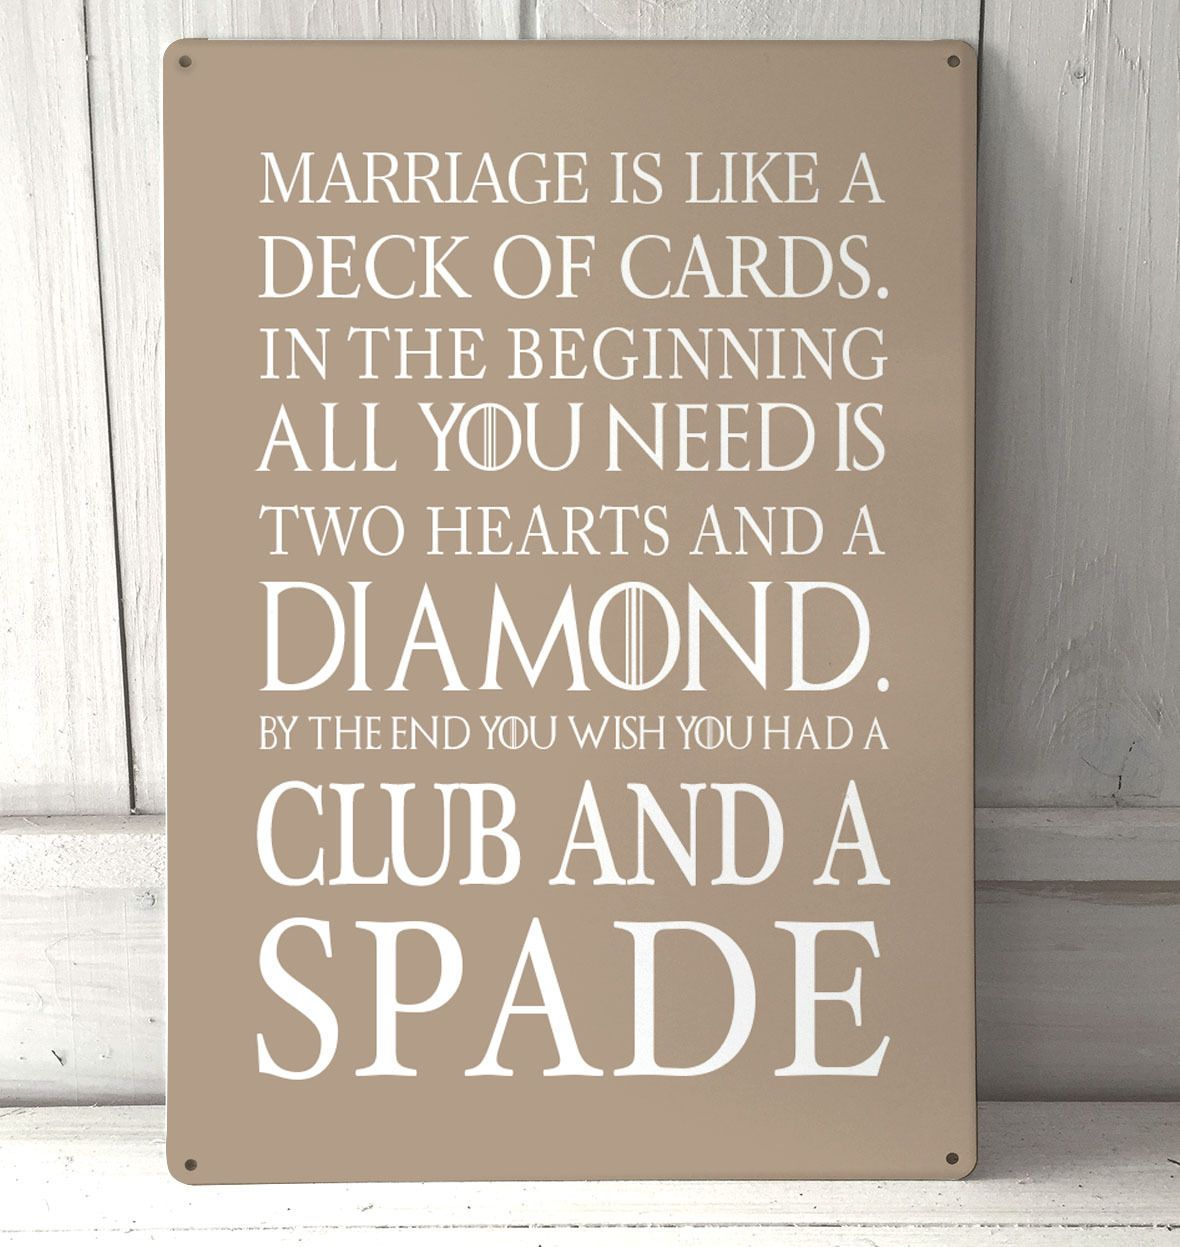 marriage is like a deck of cards funny quote sign white a4